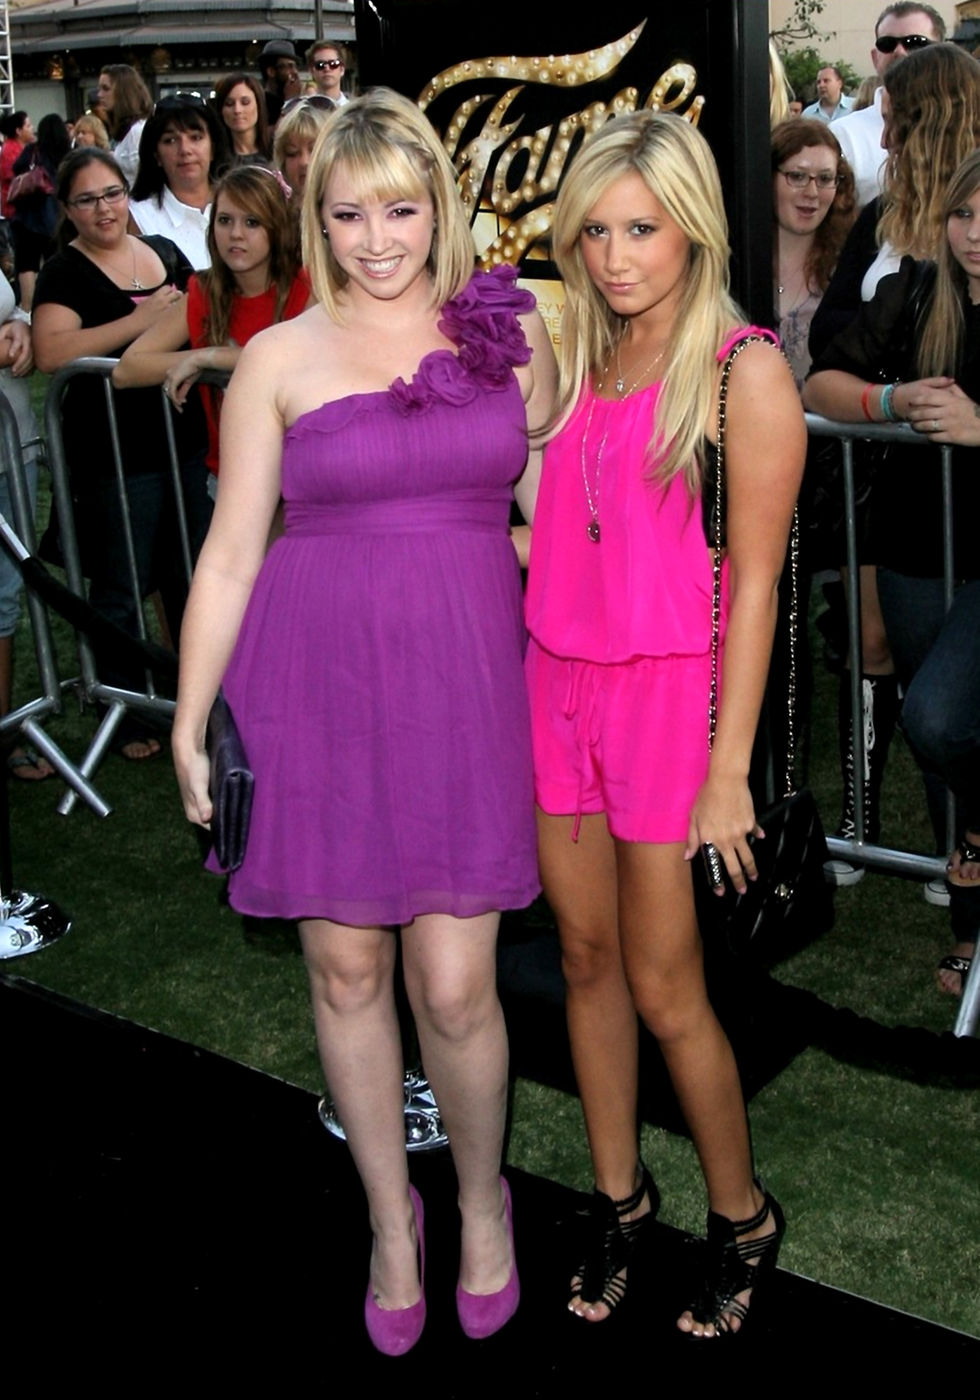 ashley-tisdale-fame-premiere-in-los-angeles-01